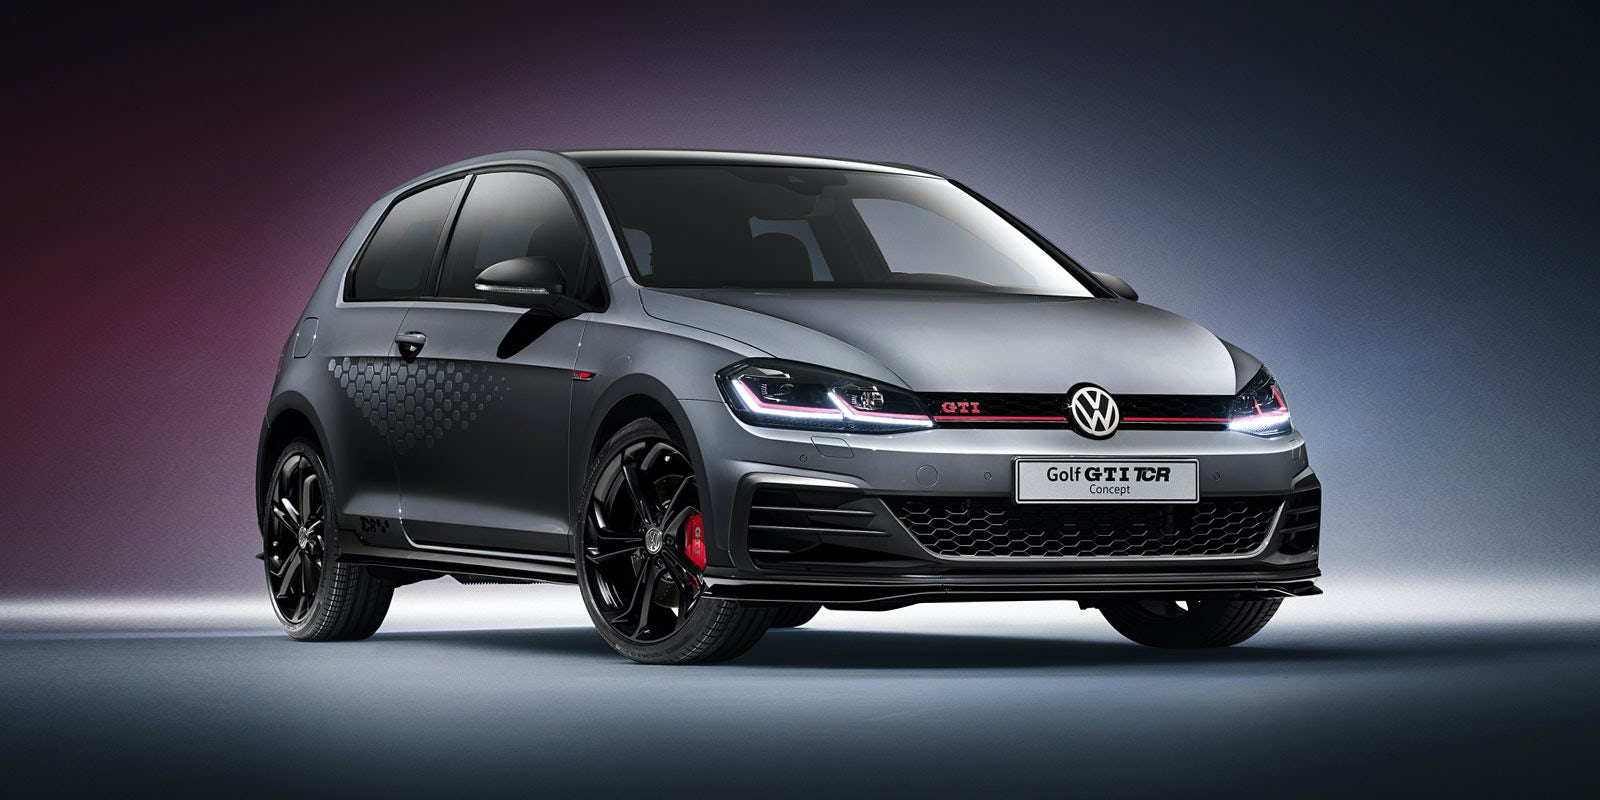 2019 Vw Golf Gti Tcr Price Specs And Release Date Carwow